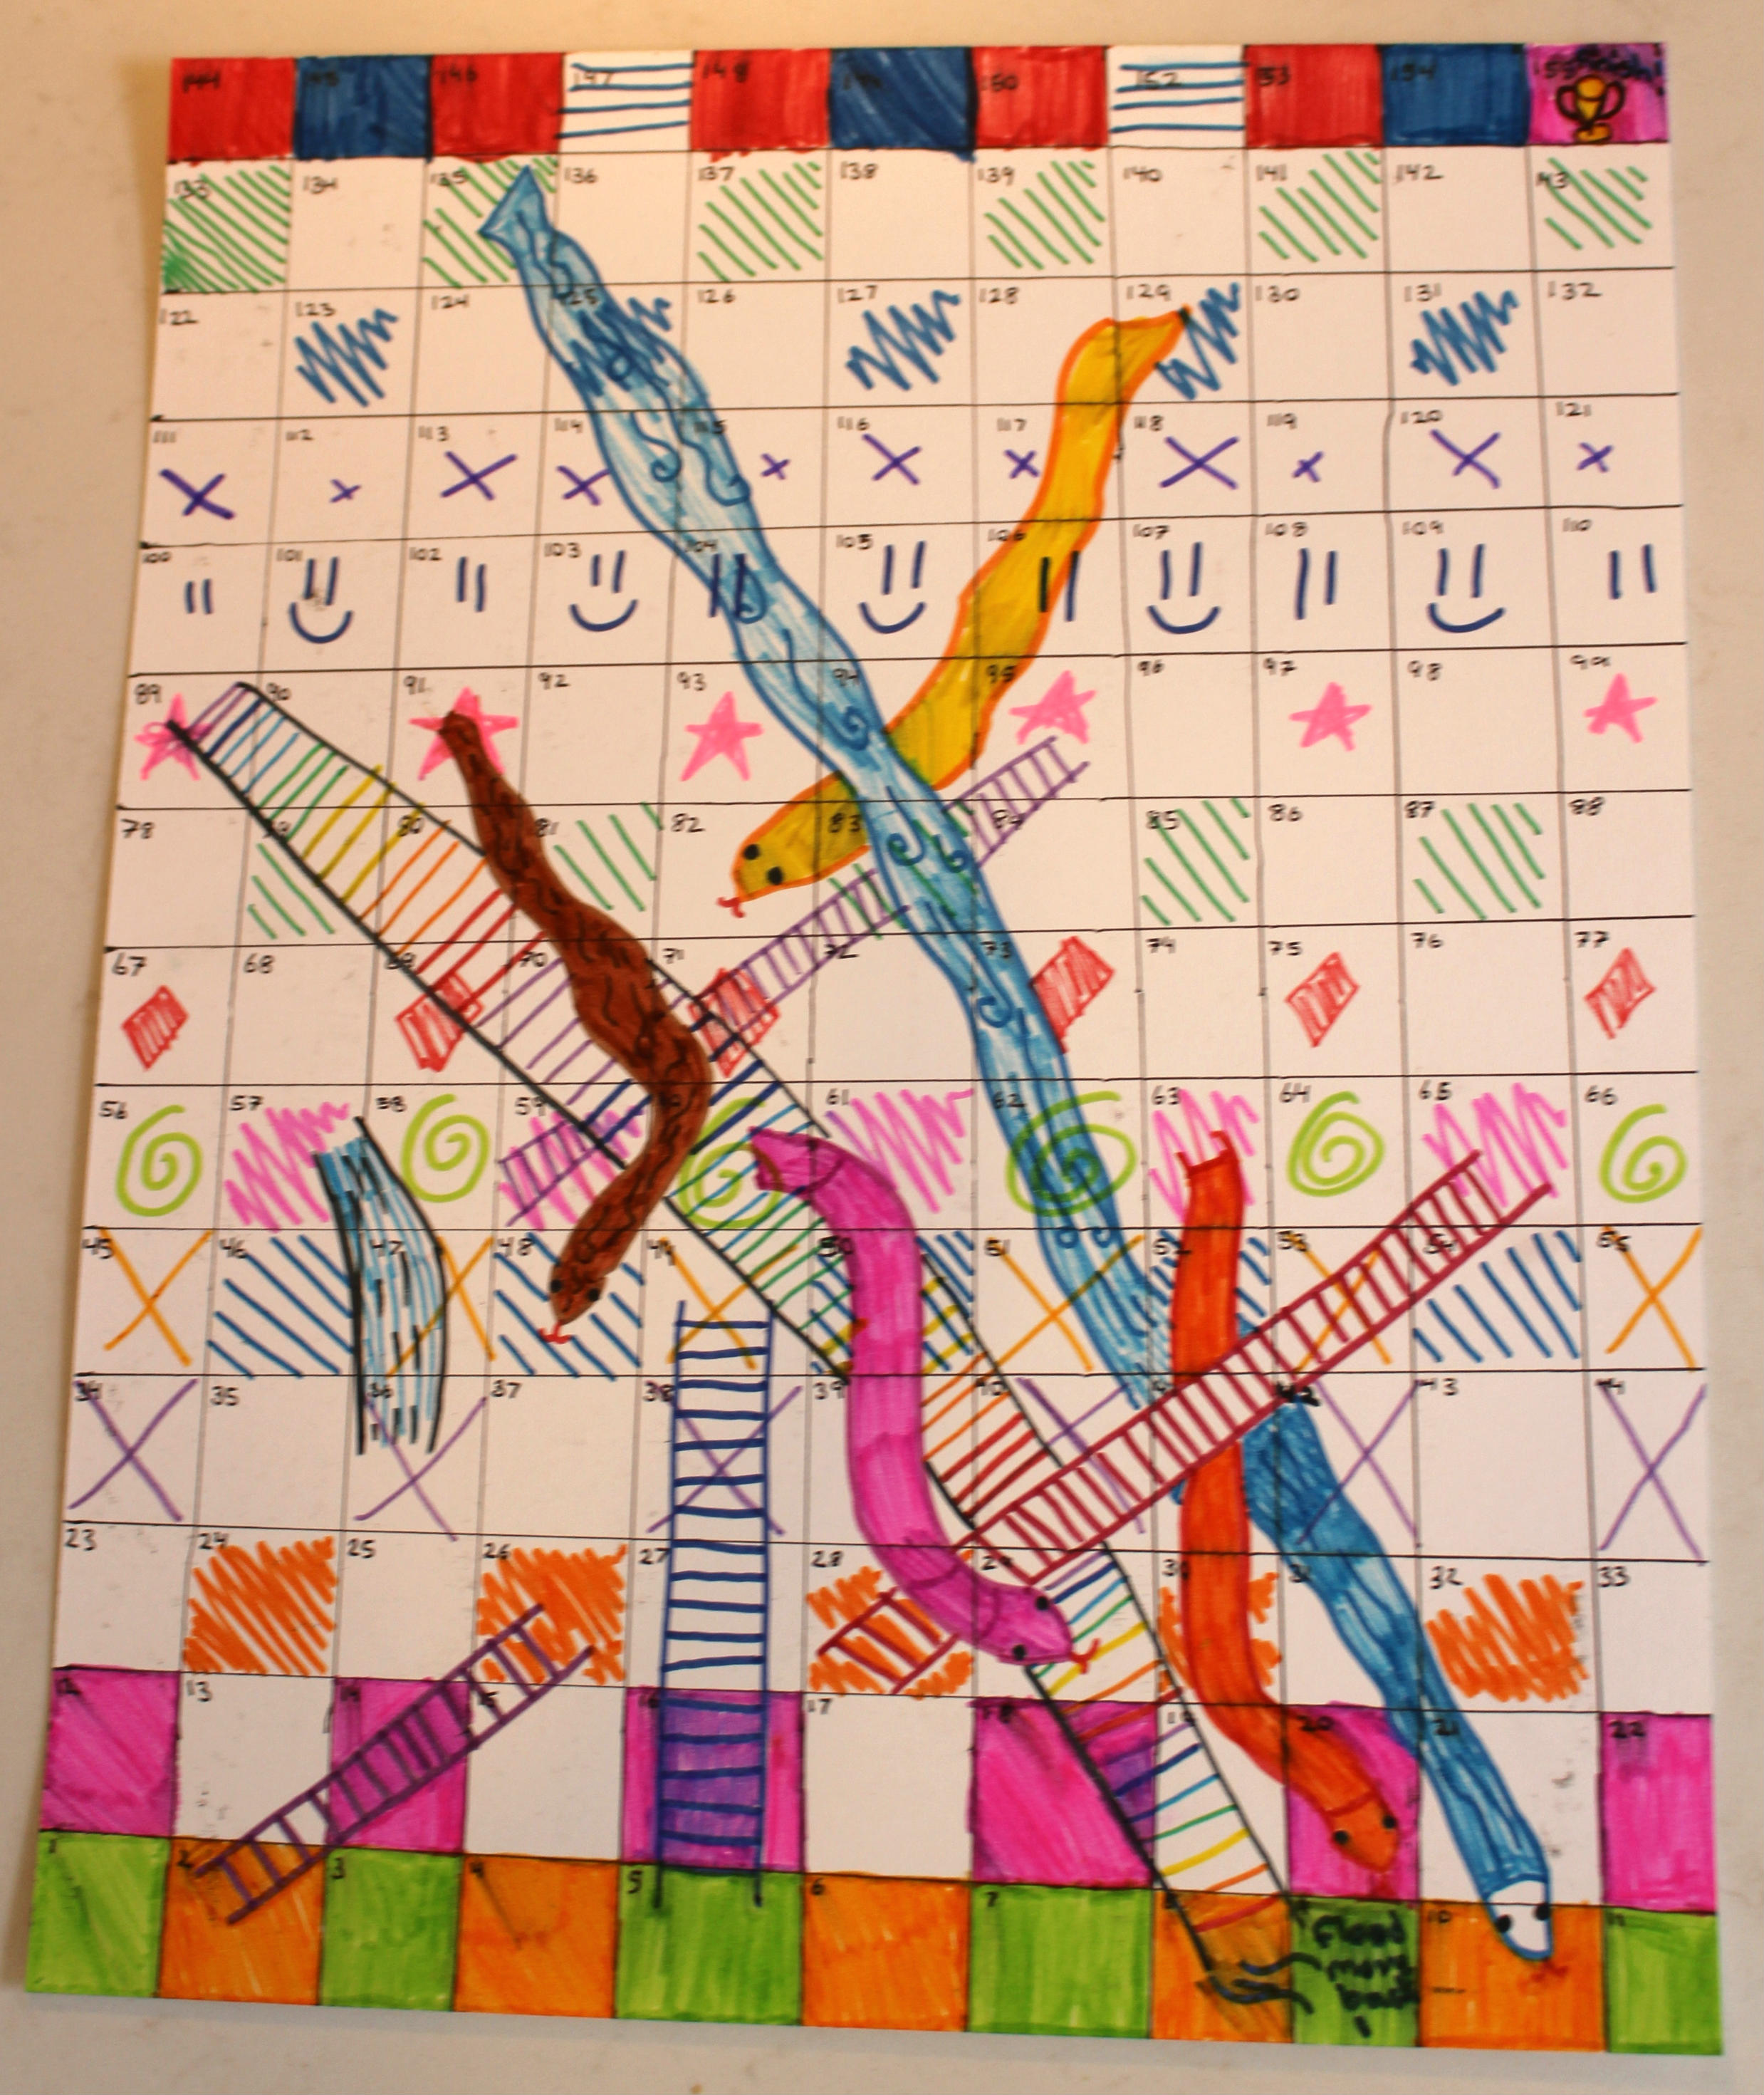 March breack 2014 design your own snakes and ladders board game beas game solutioingenieria Images